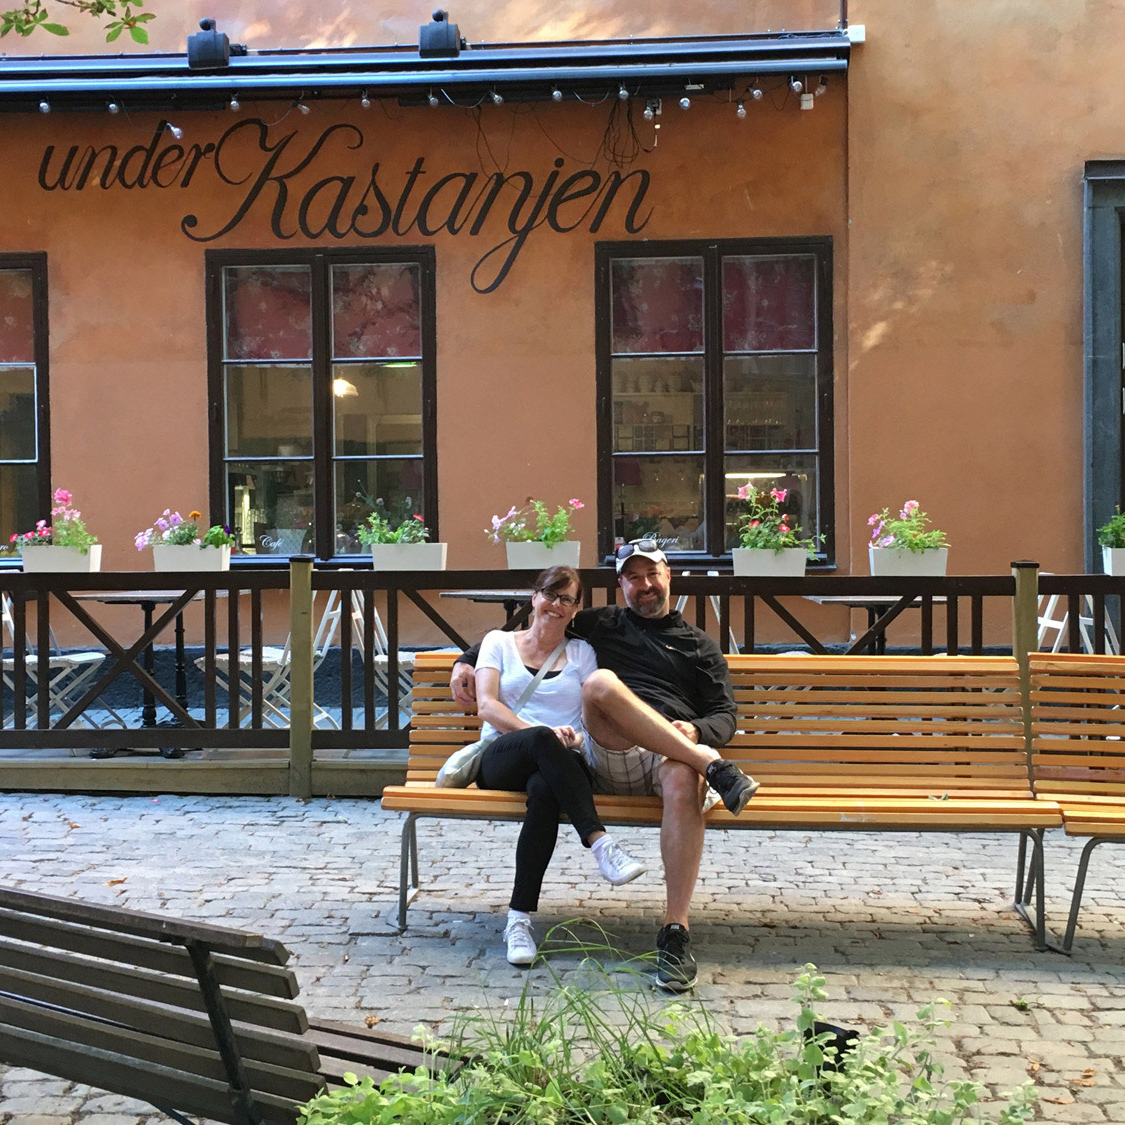 under_kastanjen_restaurant_stockholm.jpg